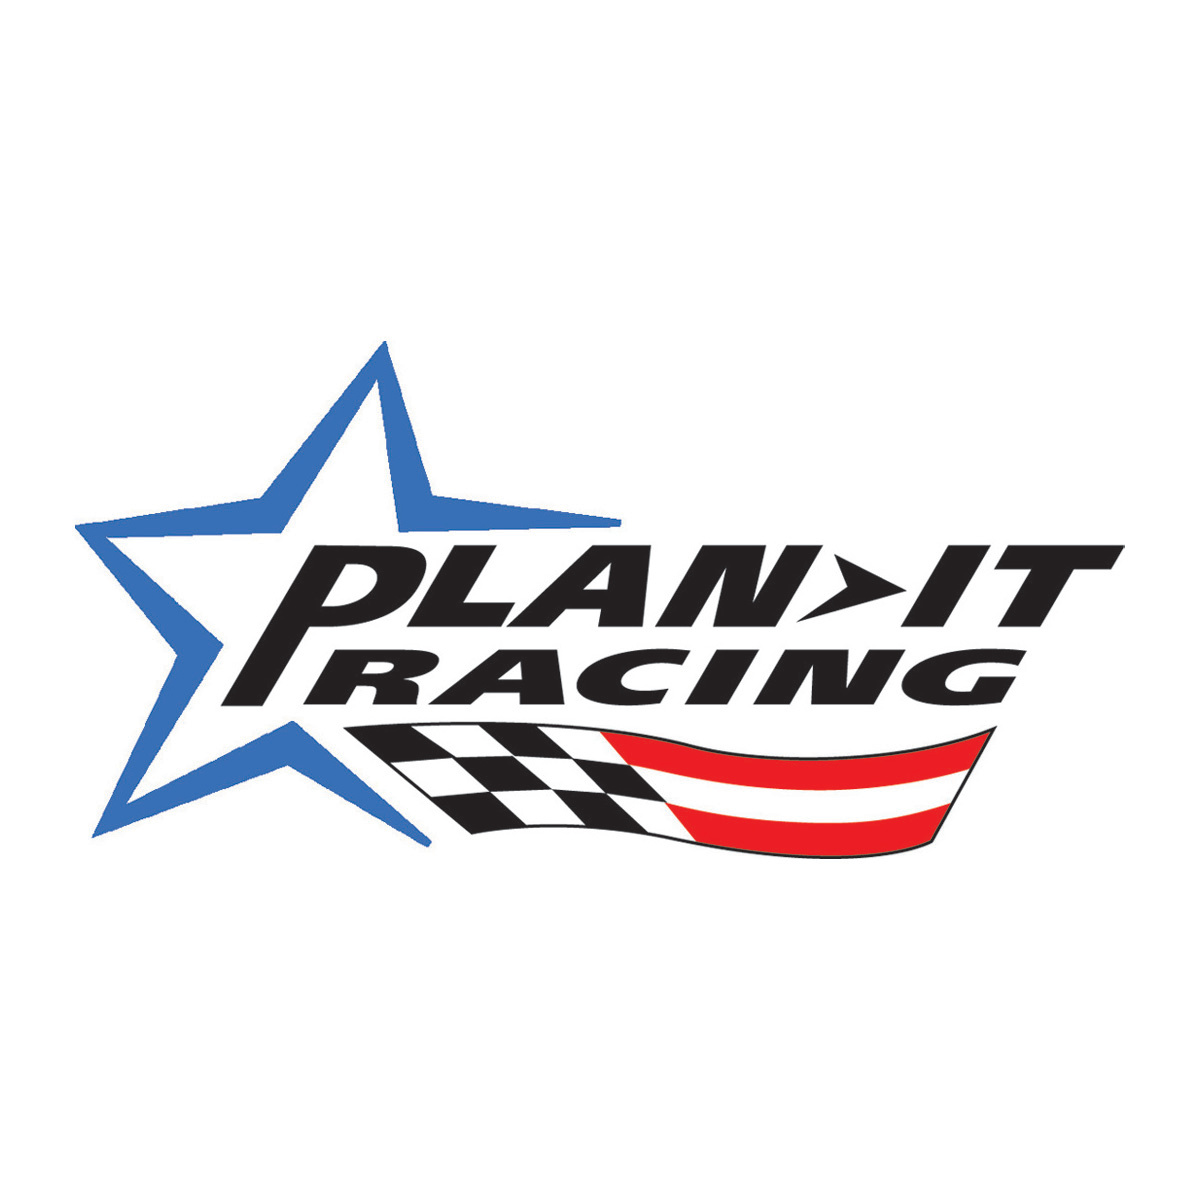 Plan-It Racing Logo DeNador